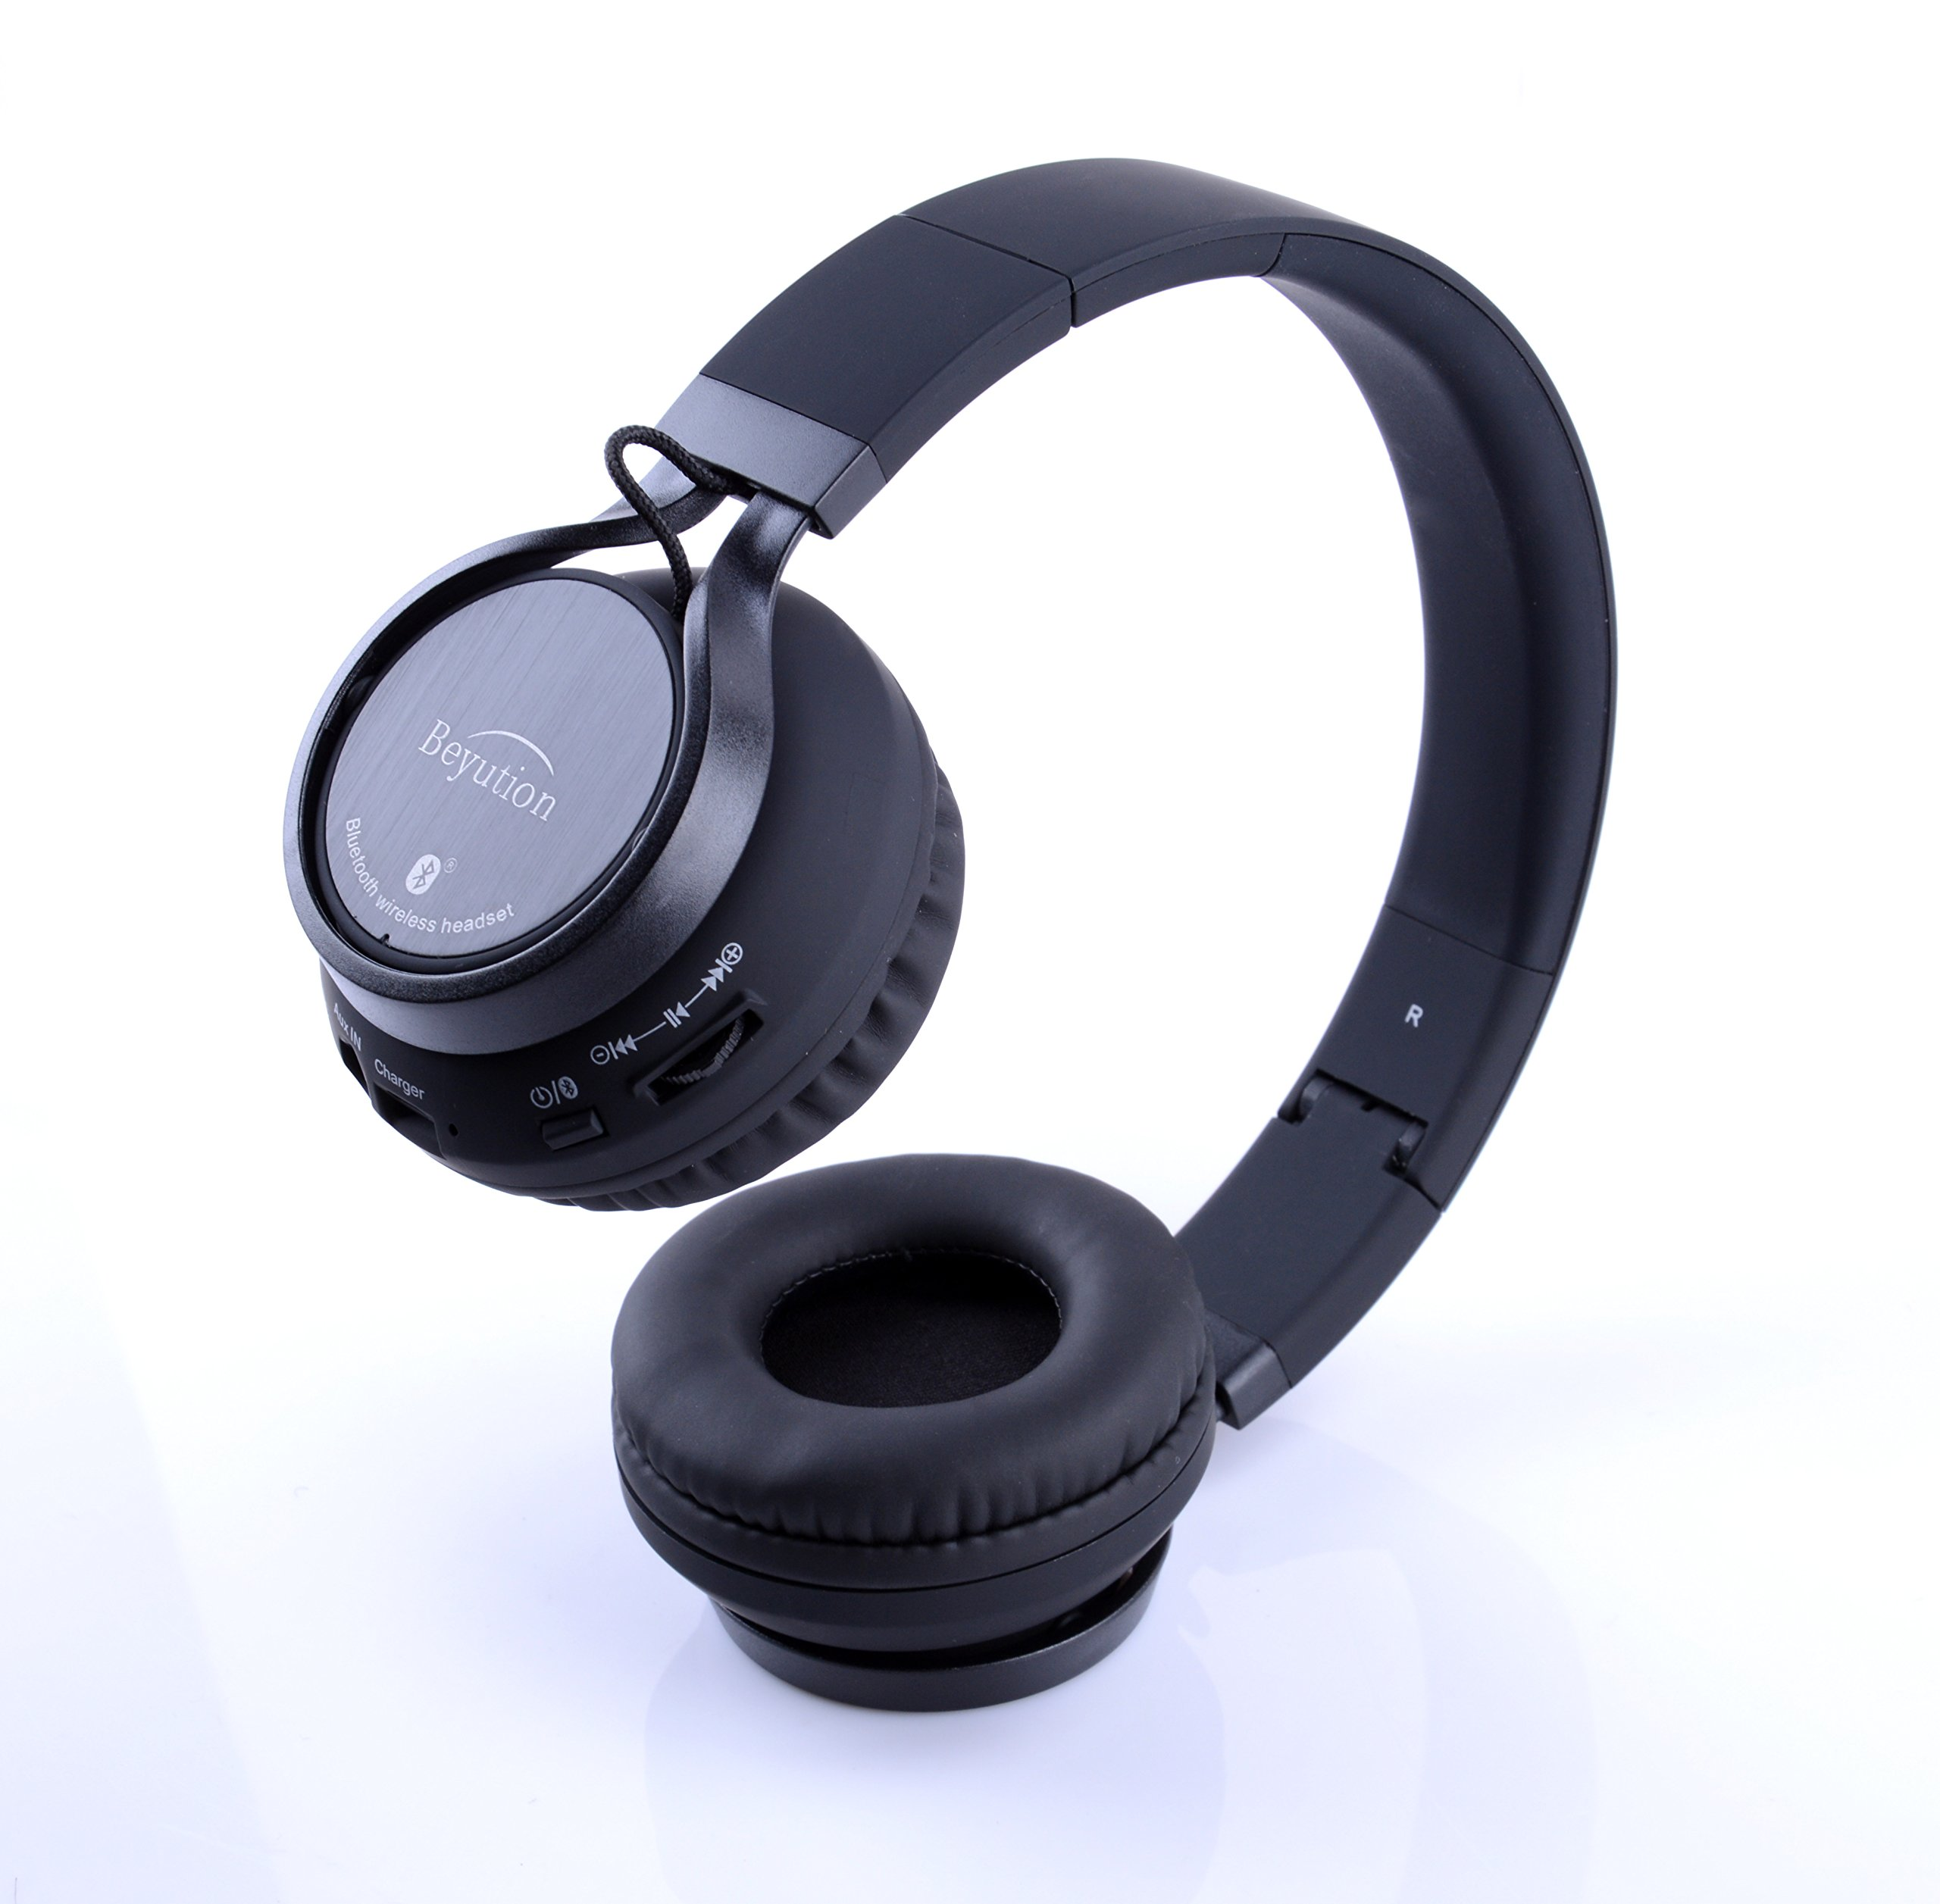 Beyution Black Metal Wireless Bluetooth Headsets Over Ear Bluetooth Headphones with Mic for iPhone 8 X Samsung Smart Phones and All Tablet Laptop with Bluetooth Funcstion (BT525-Black-Metal) by Beyution (Image #8)